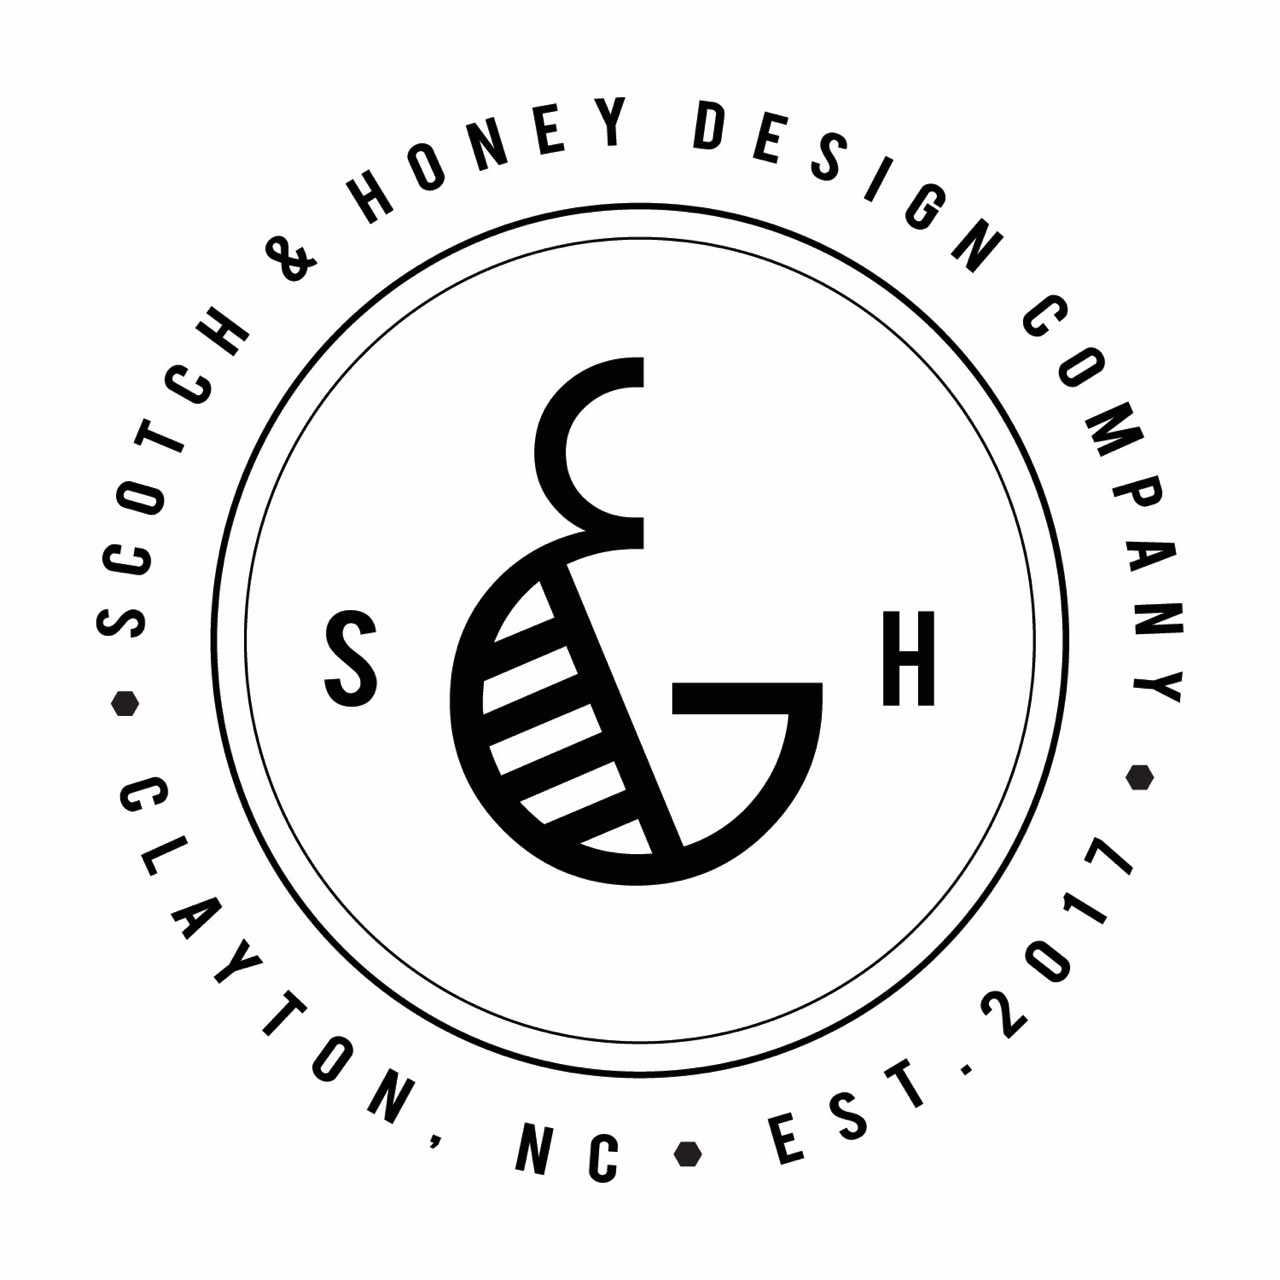 Scotch&Honey Design Co.